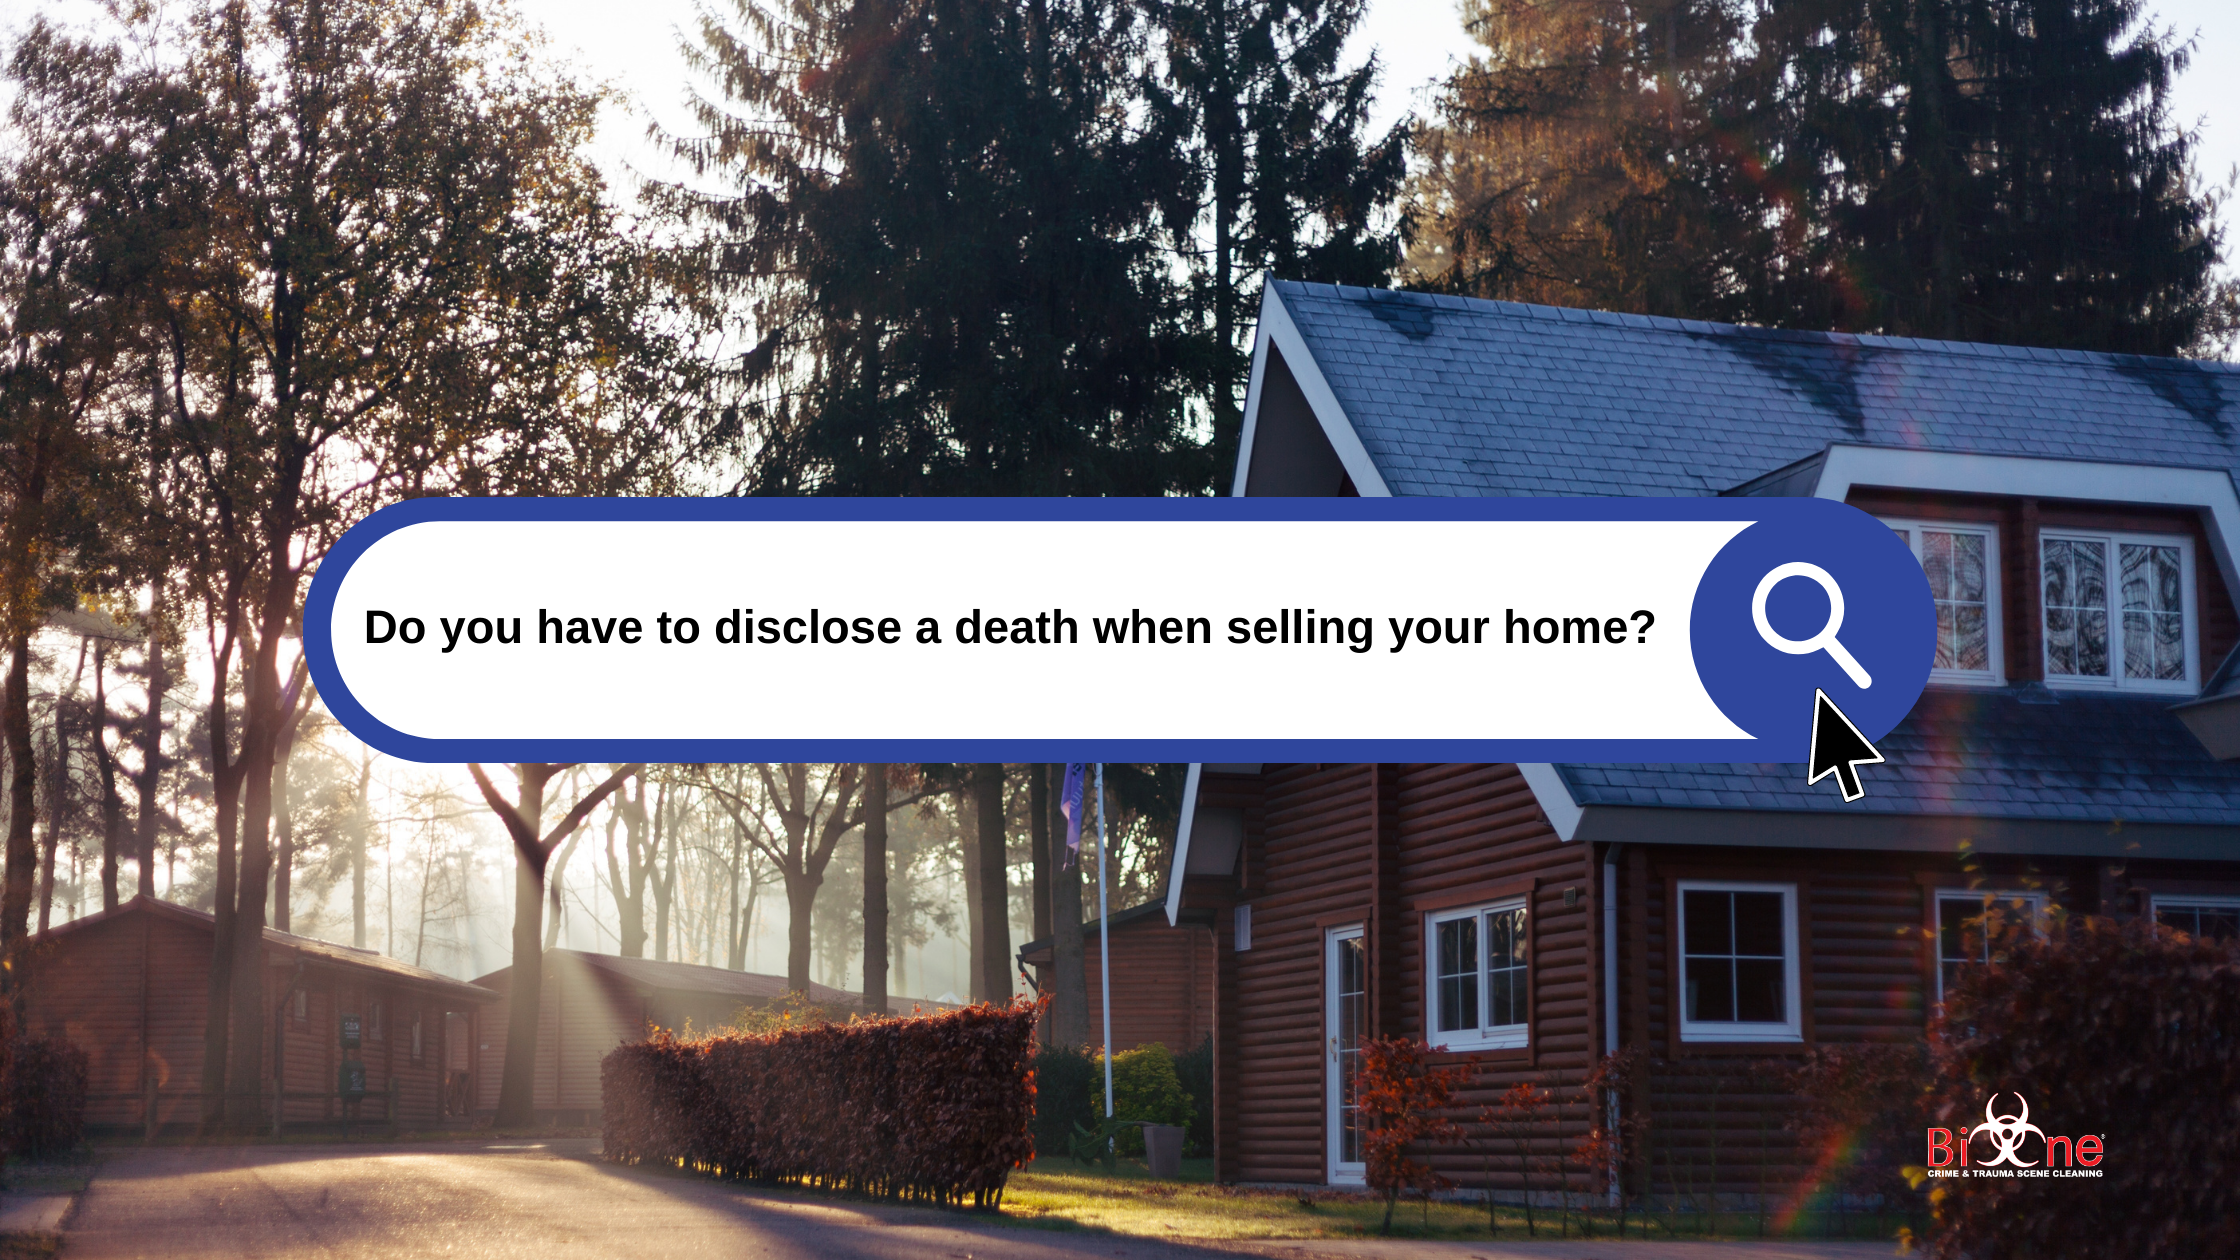 In Georgia Do you Have to Disclose a Death When Selling Your Home?